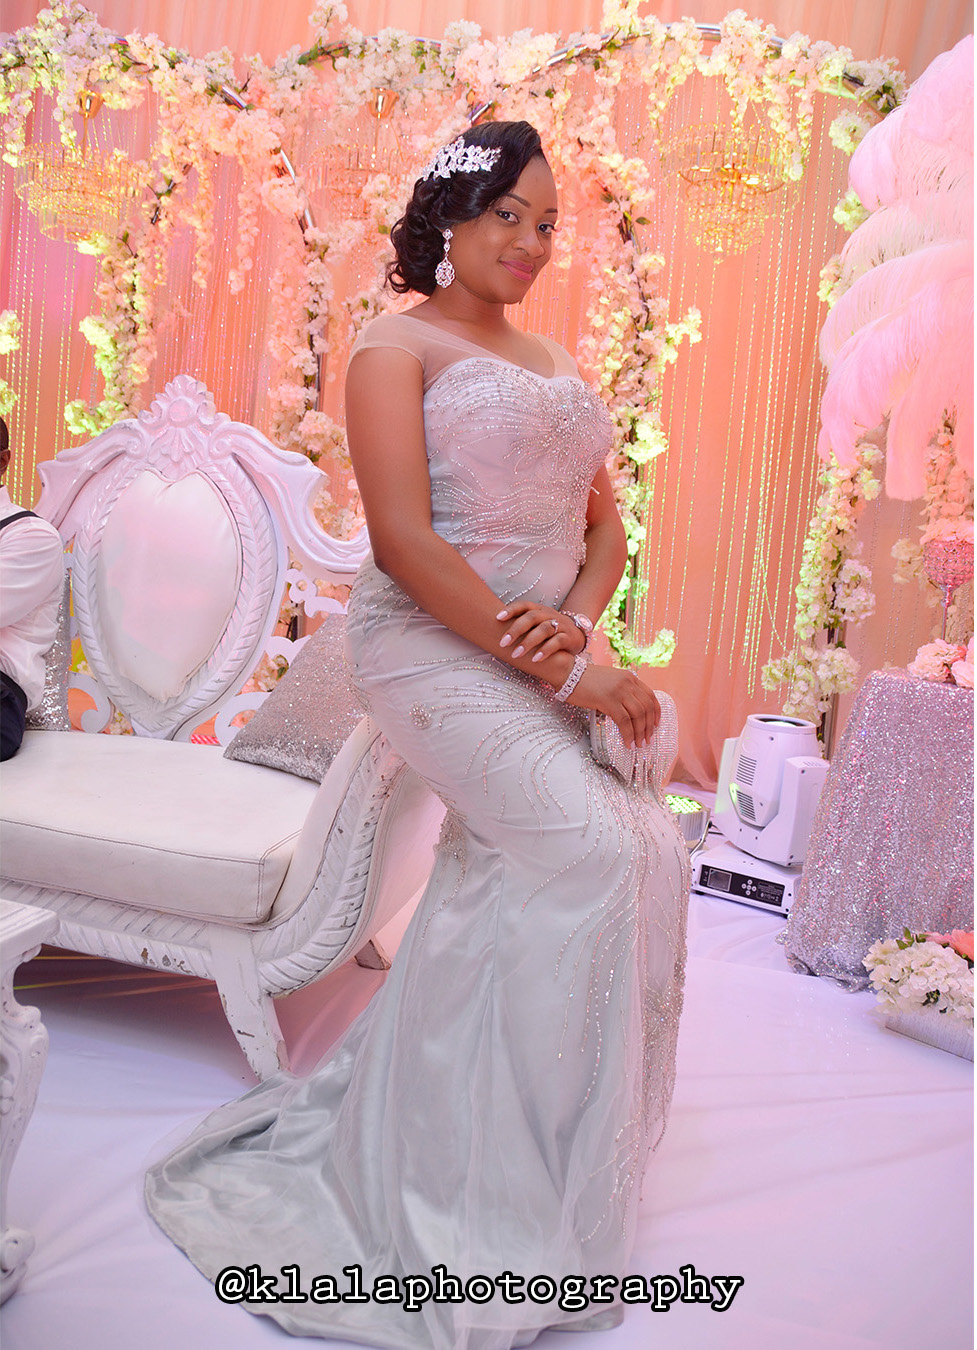 #BBNWonderland bride Frances wedding_127